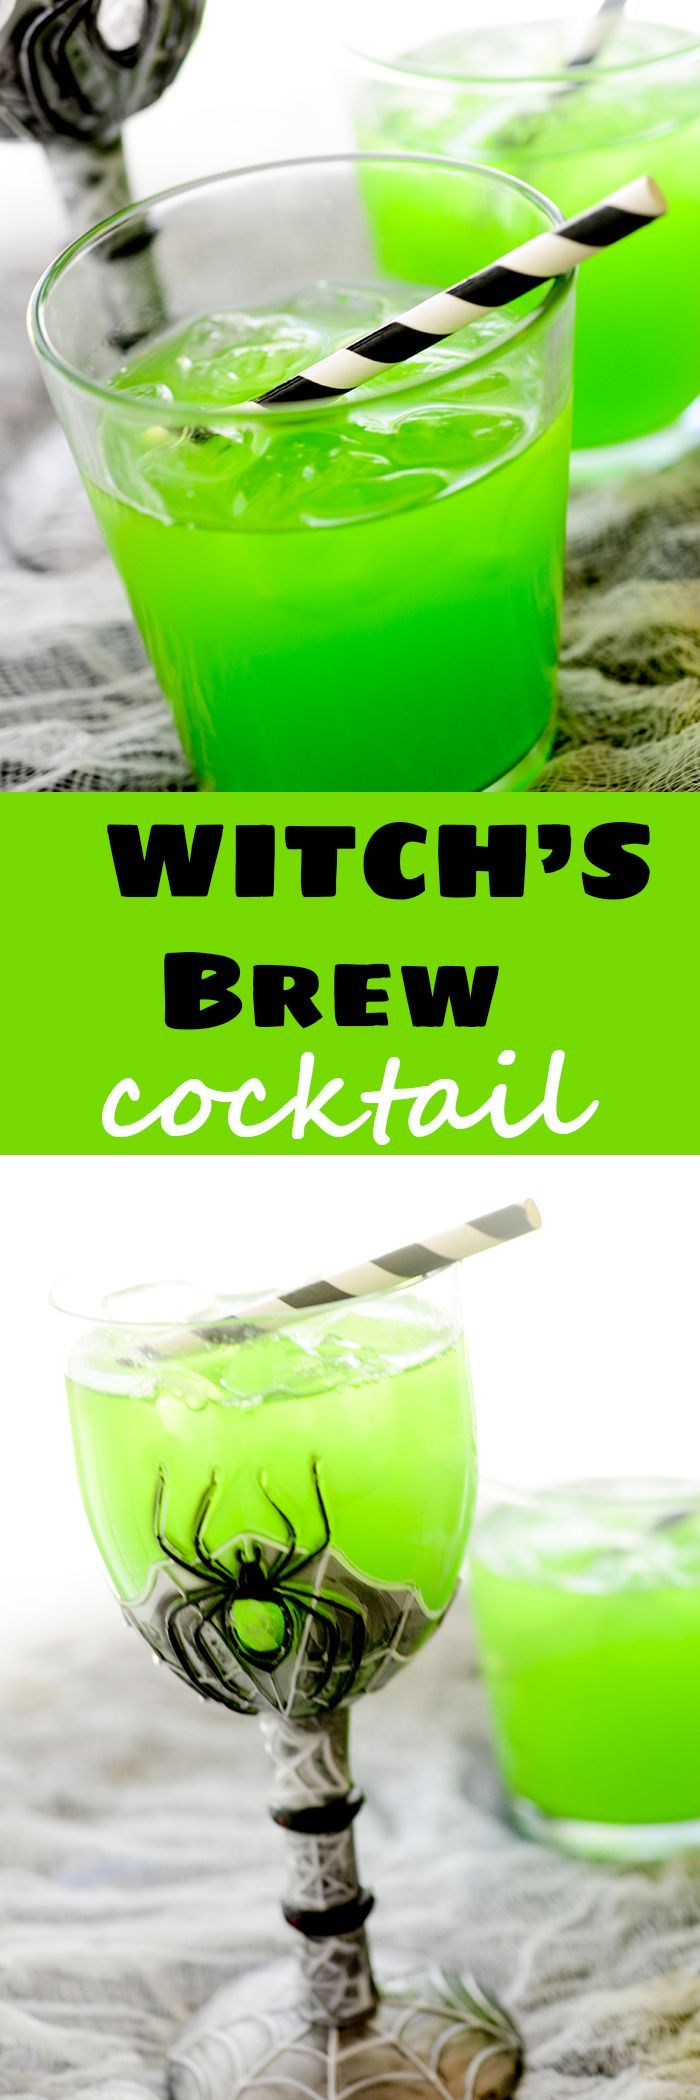 Halloween Witch's Brew Cocktail #Halloween #witch #drinks - Recipe Diaries